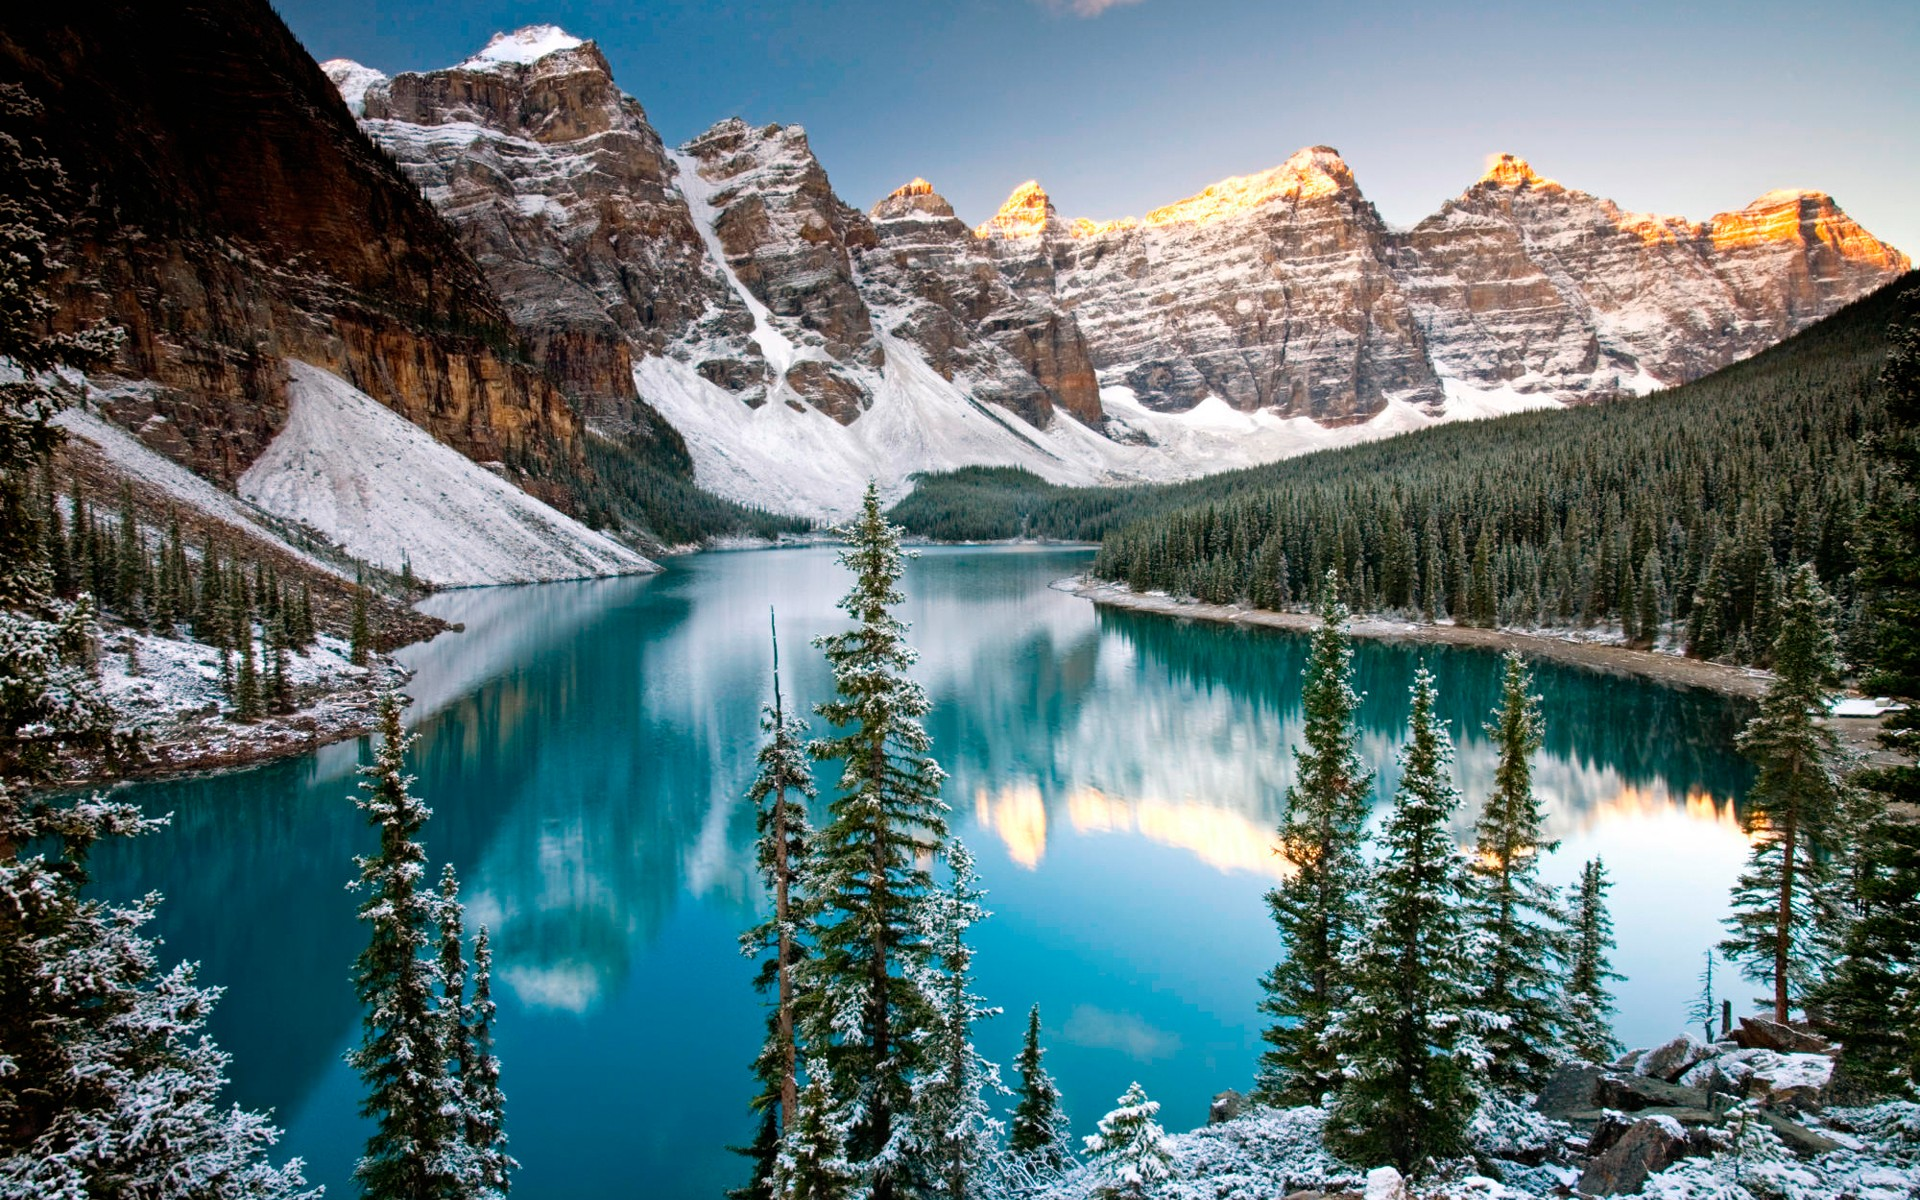 Banff-national-park-canada-winter-azbooking